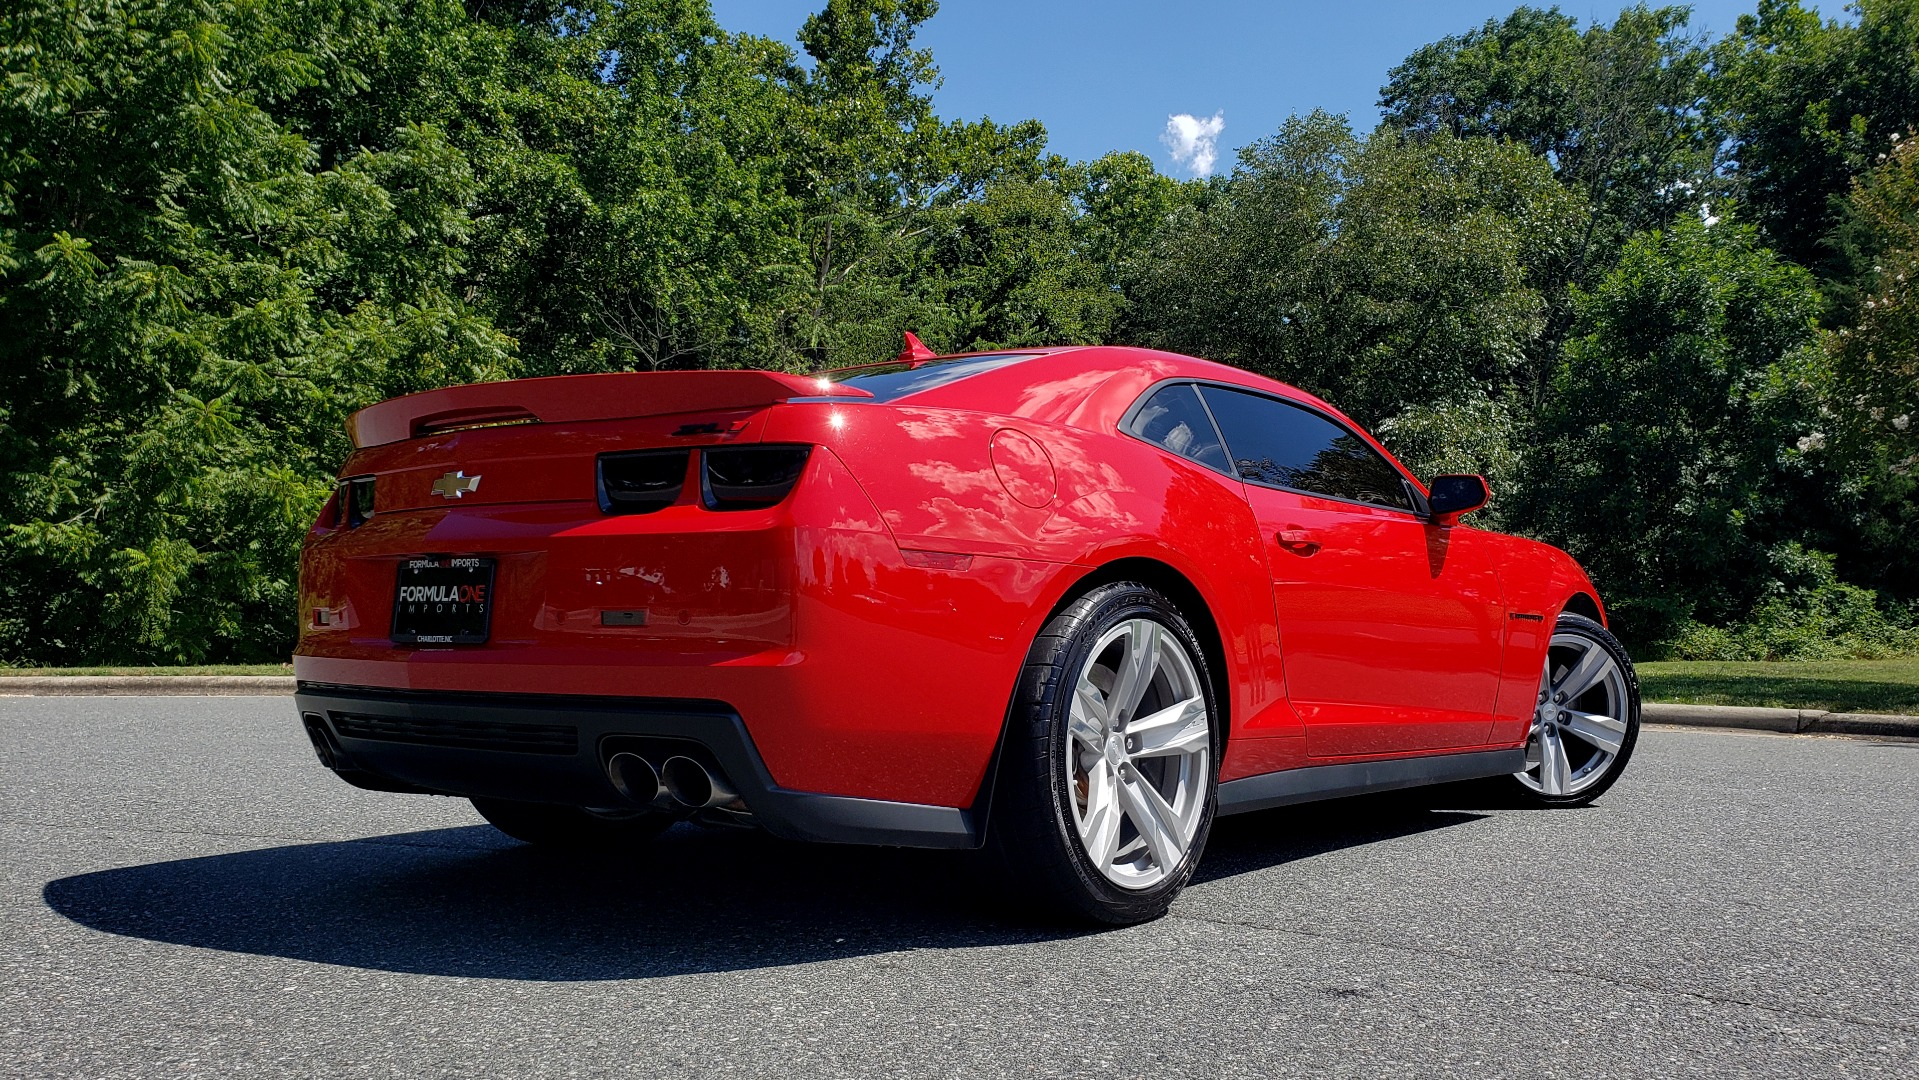 Used 2013 Chevrolet CAMARO ZL1 580HP / AUTO / NAV / BOSTON ACOUSTIC SND / REARVIEW for sale $40,995 at Formula Imports in Charlotte NC 28227 7